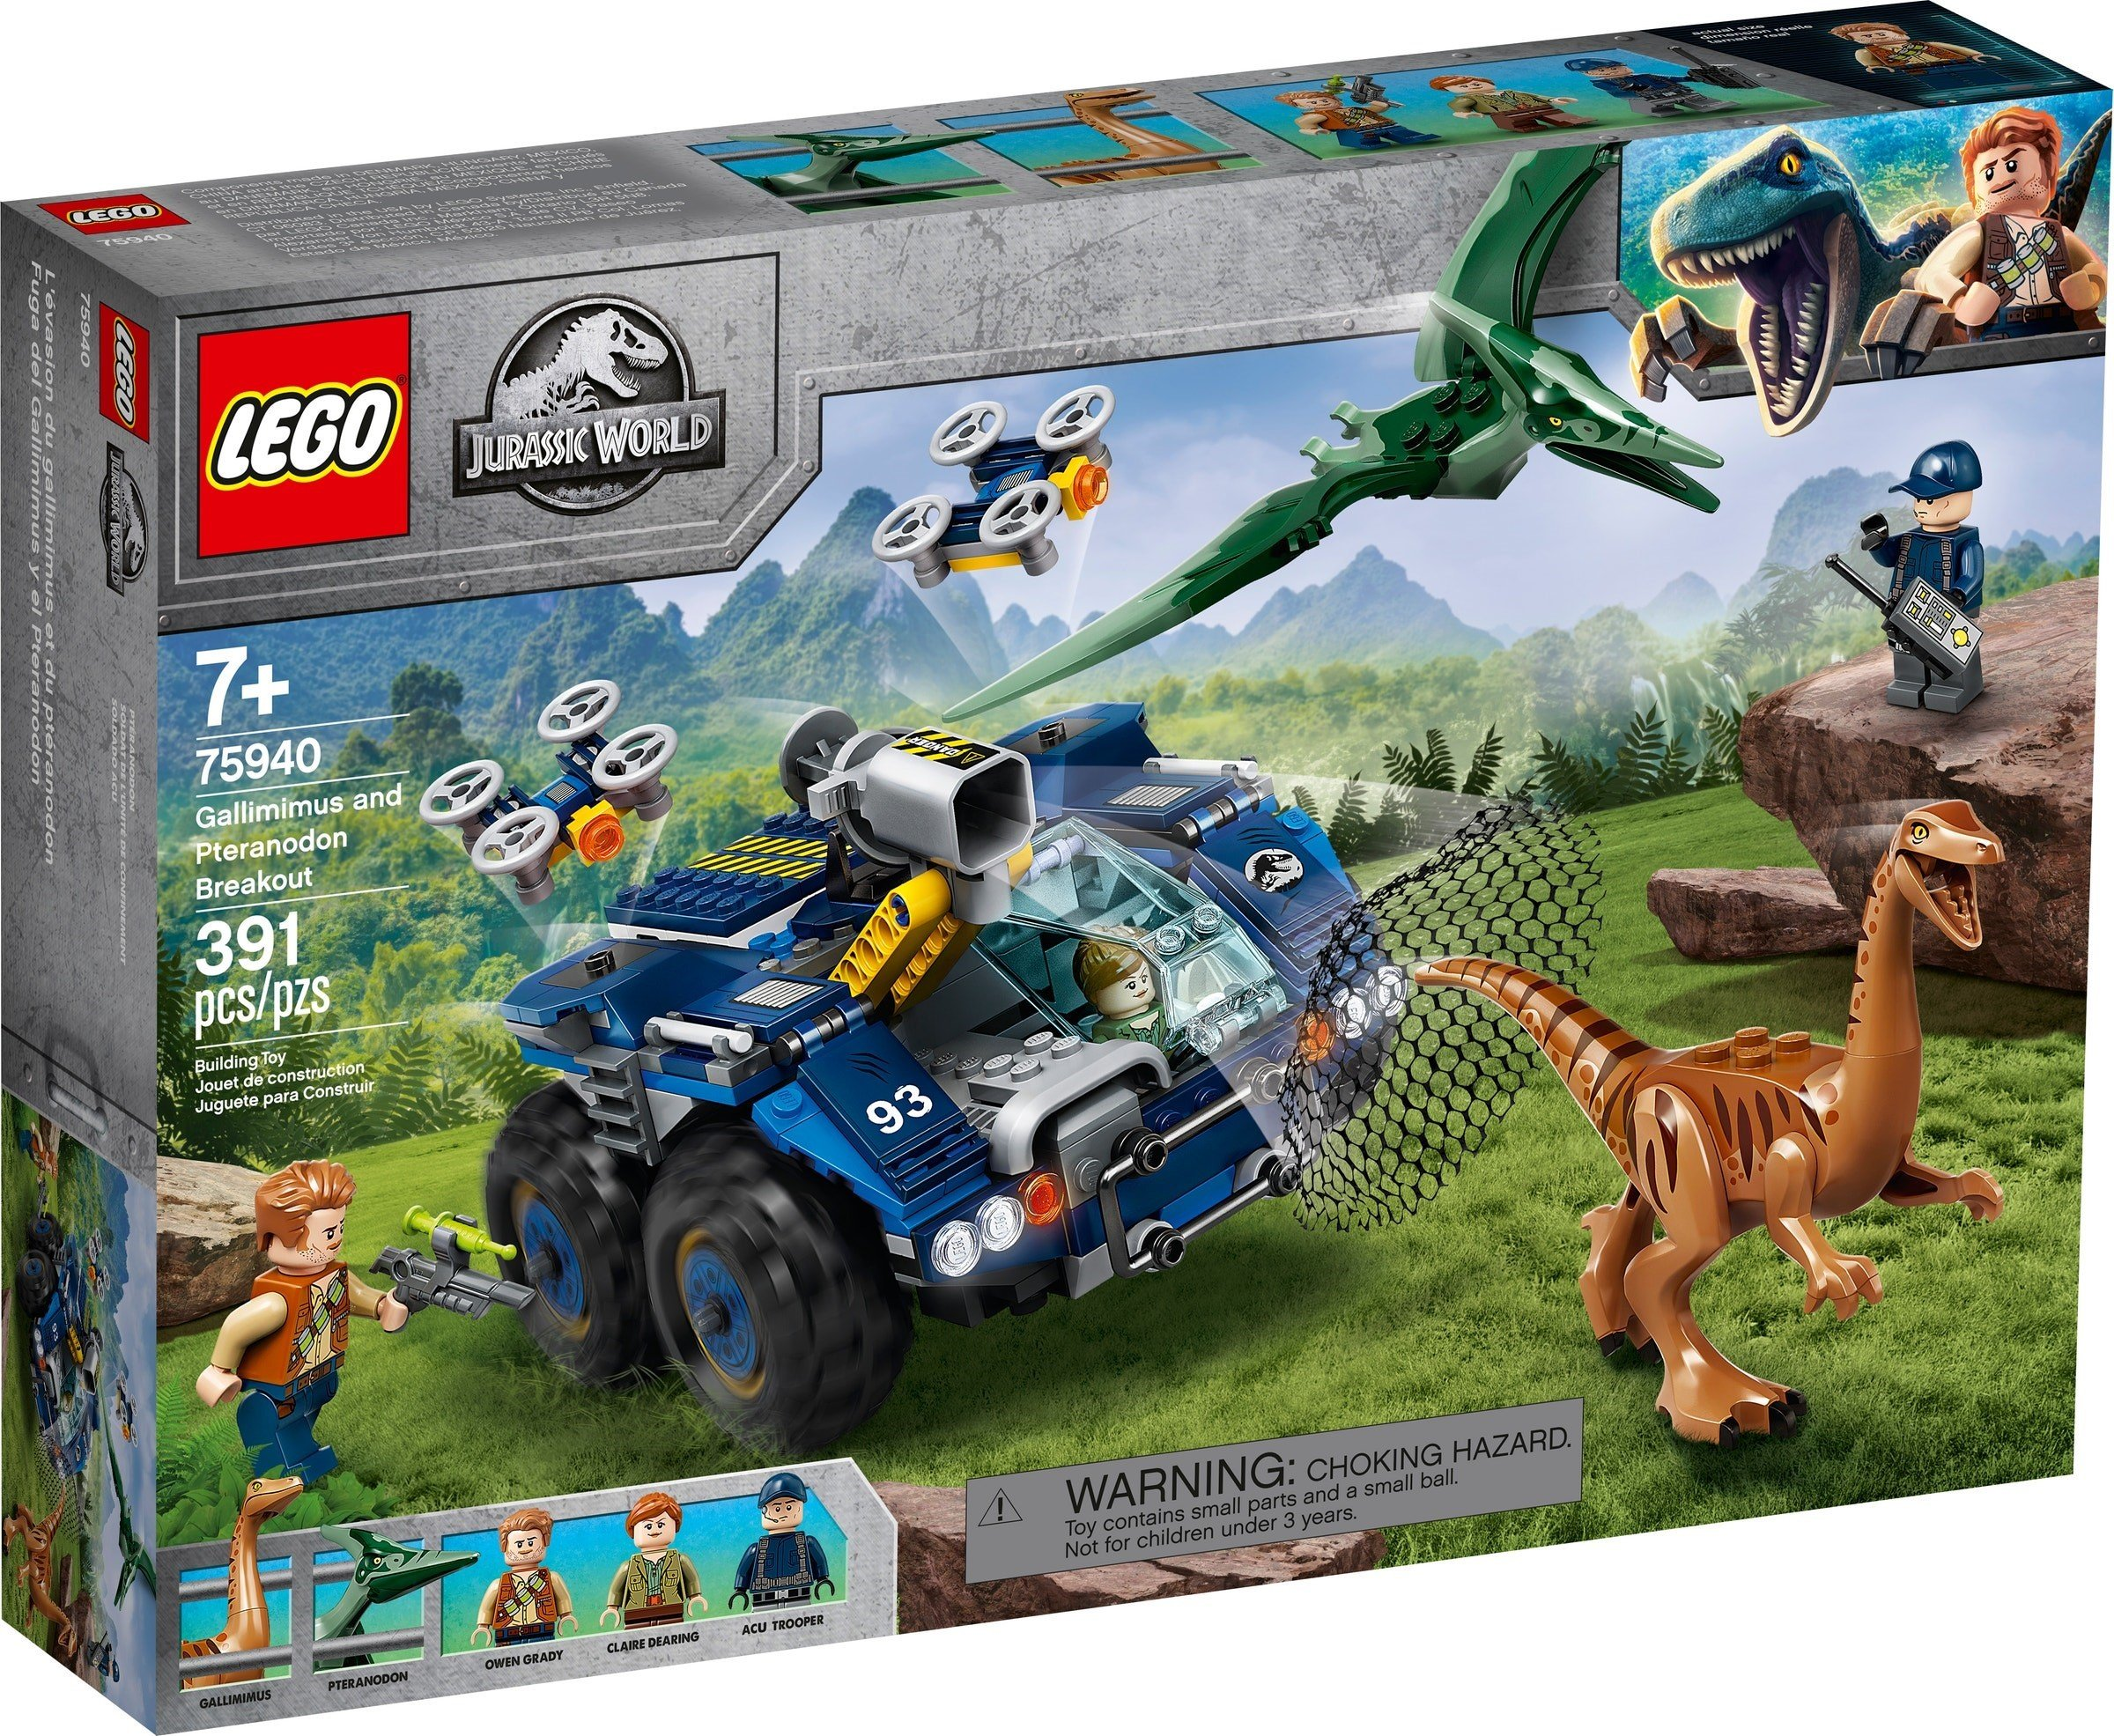 LEGO Jurassic World - Gallimimus and Pteranodon Breakout (75940)